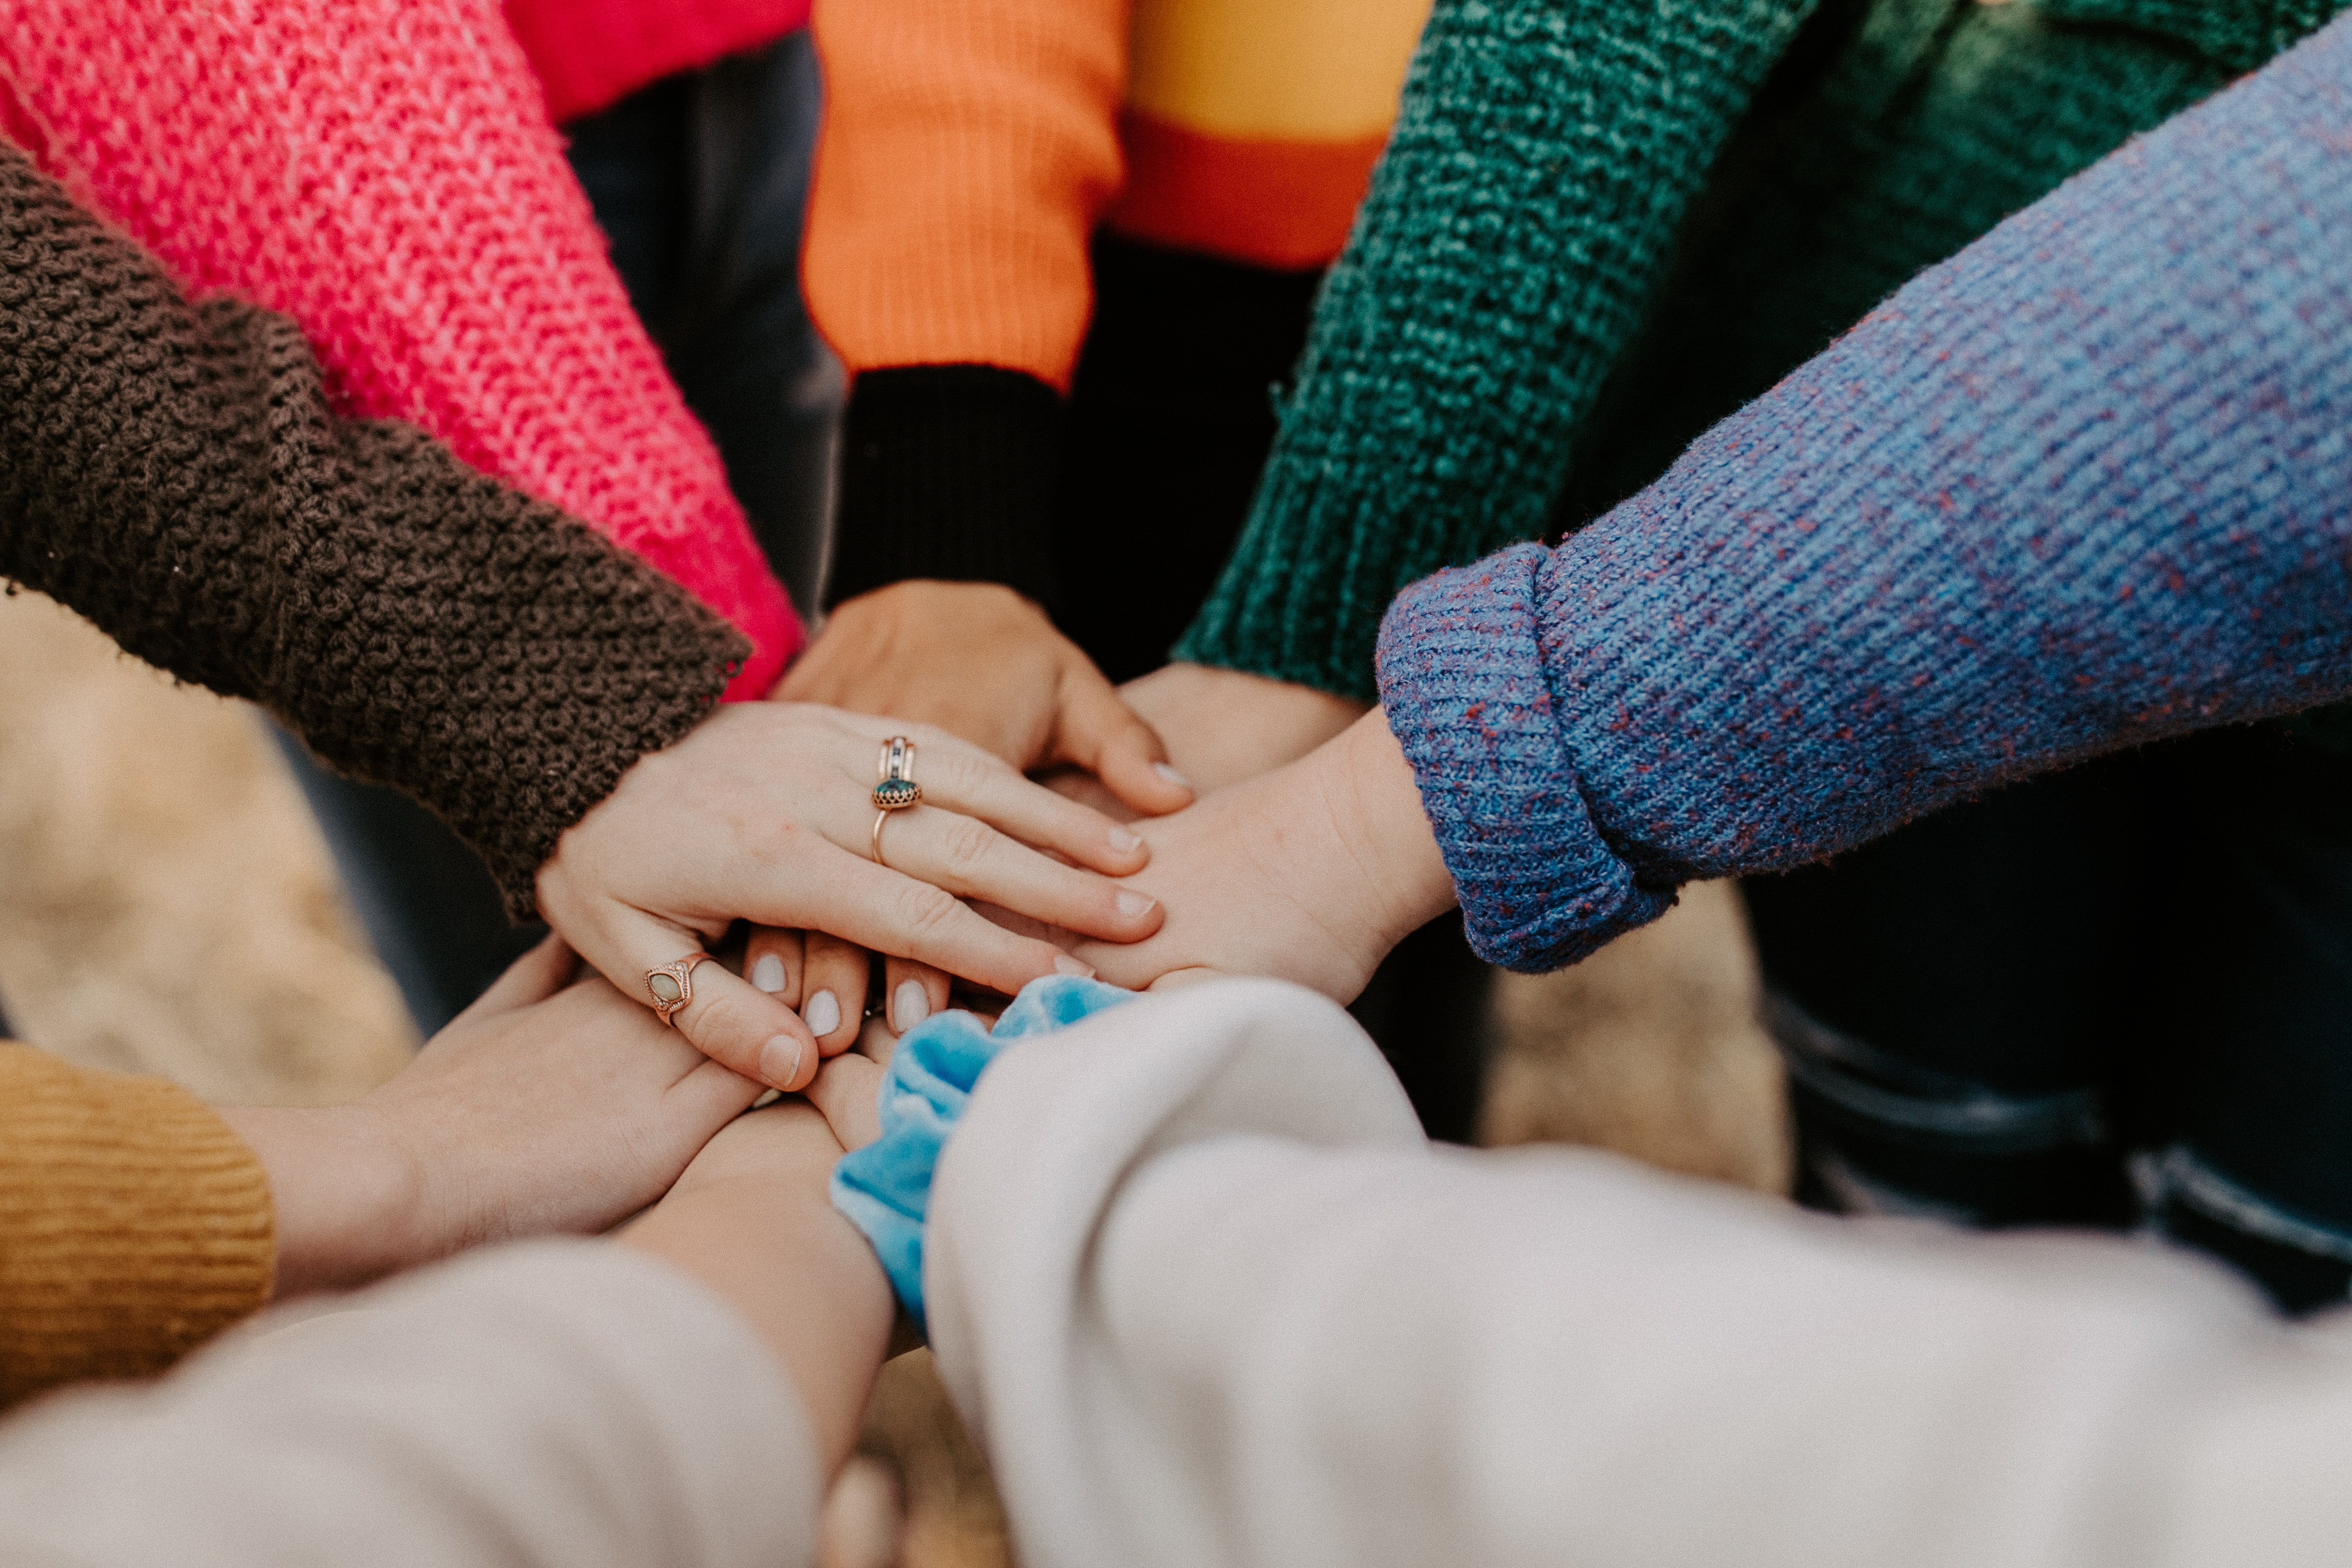 A group of people stacking there hands together as a sign of teamwork.